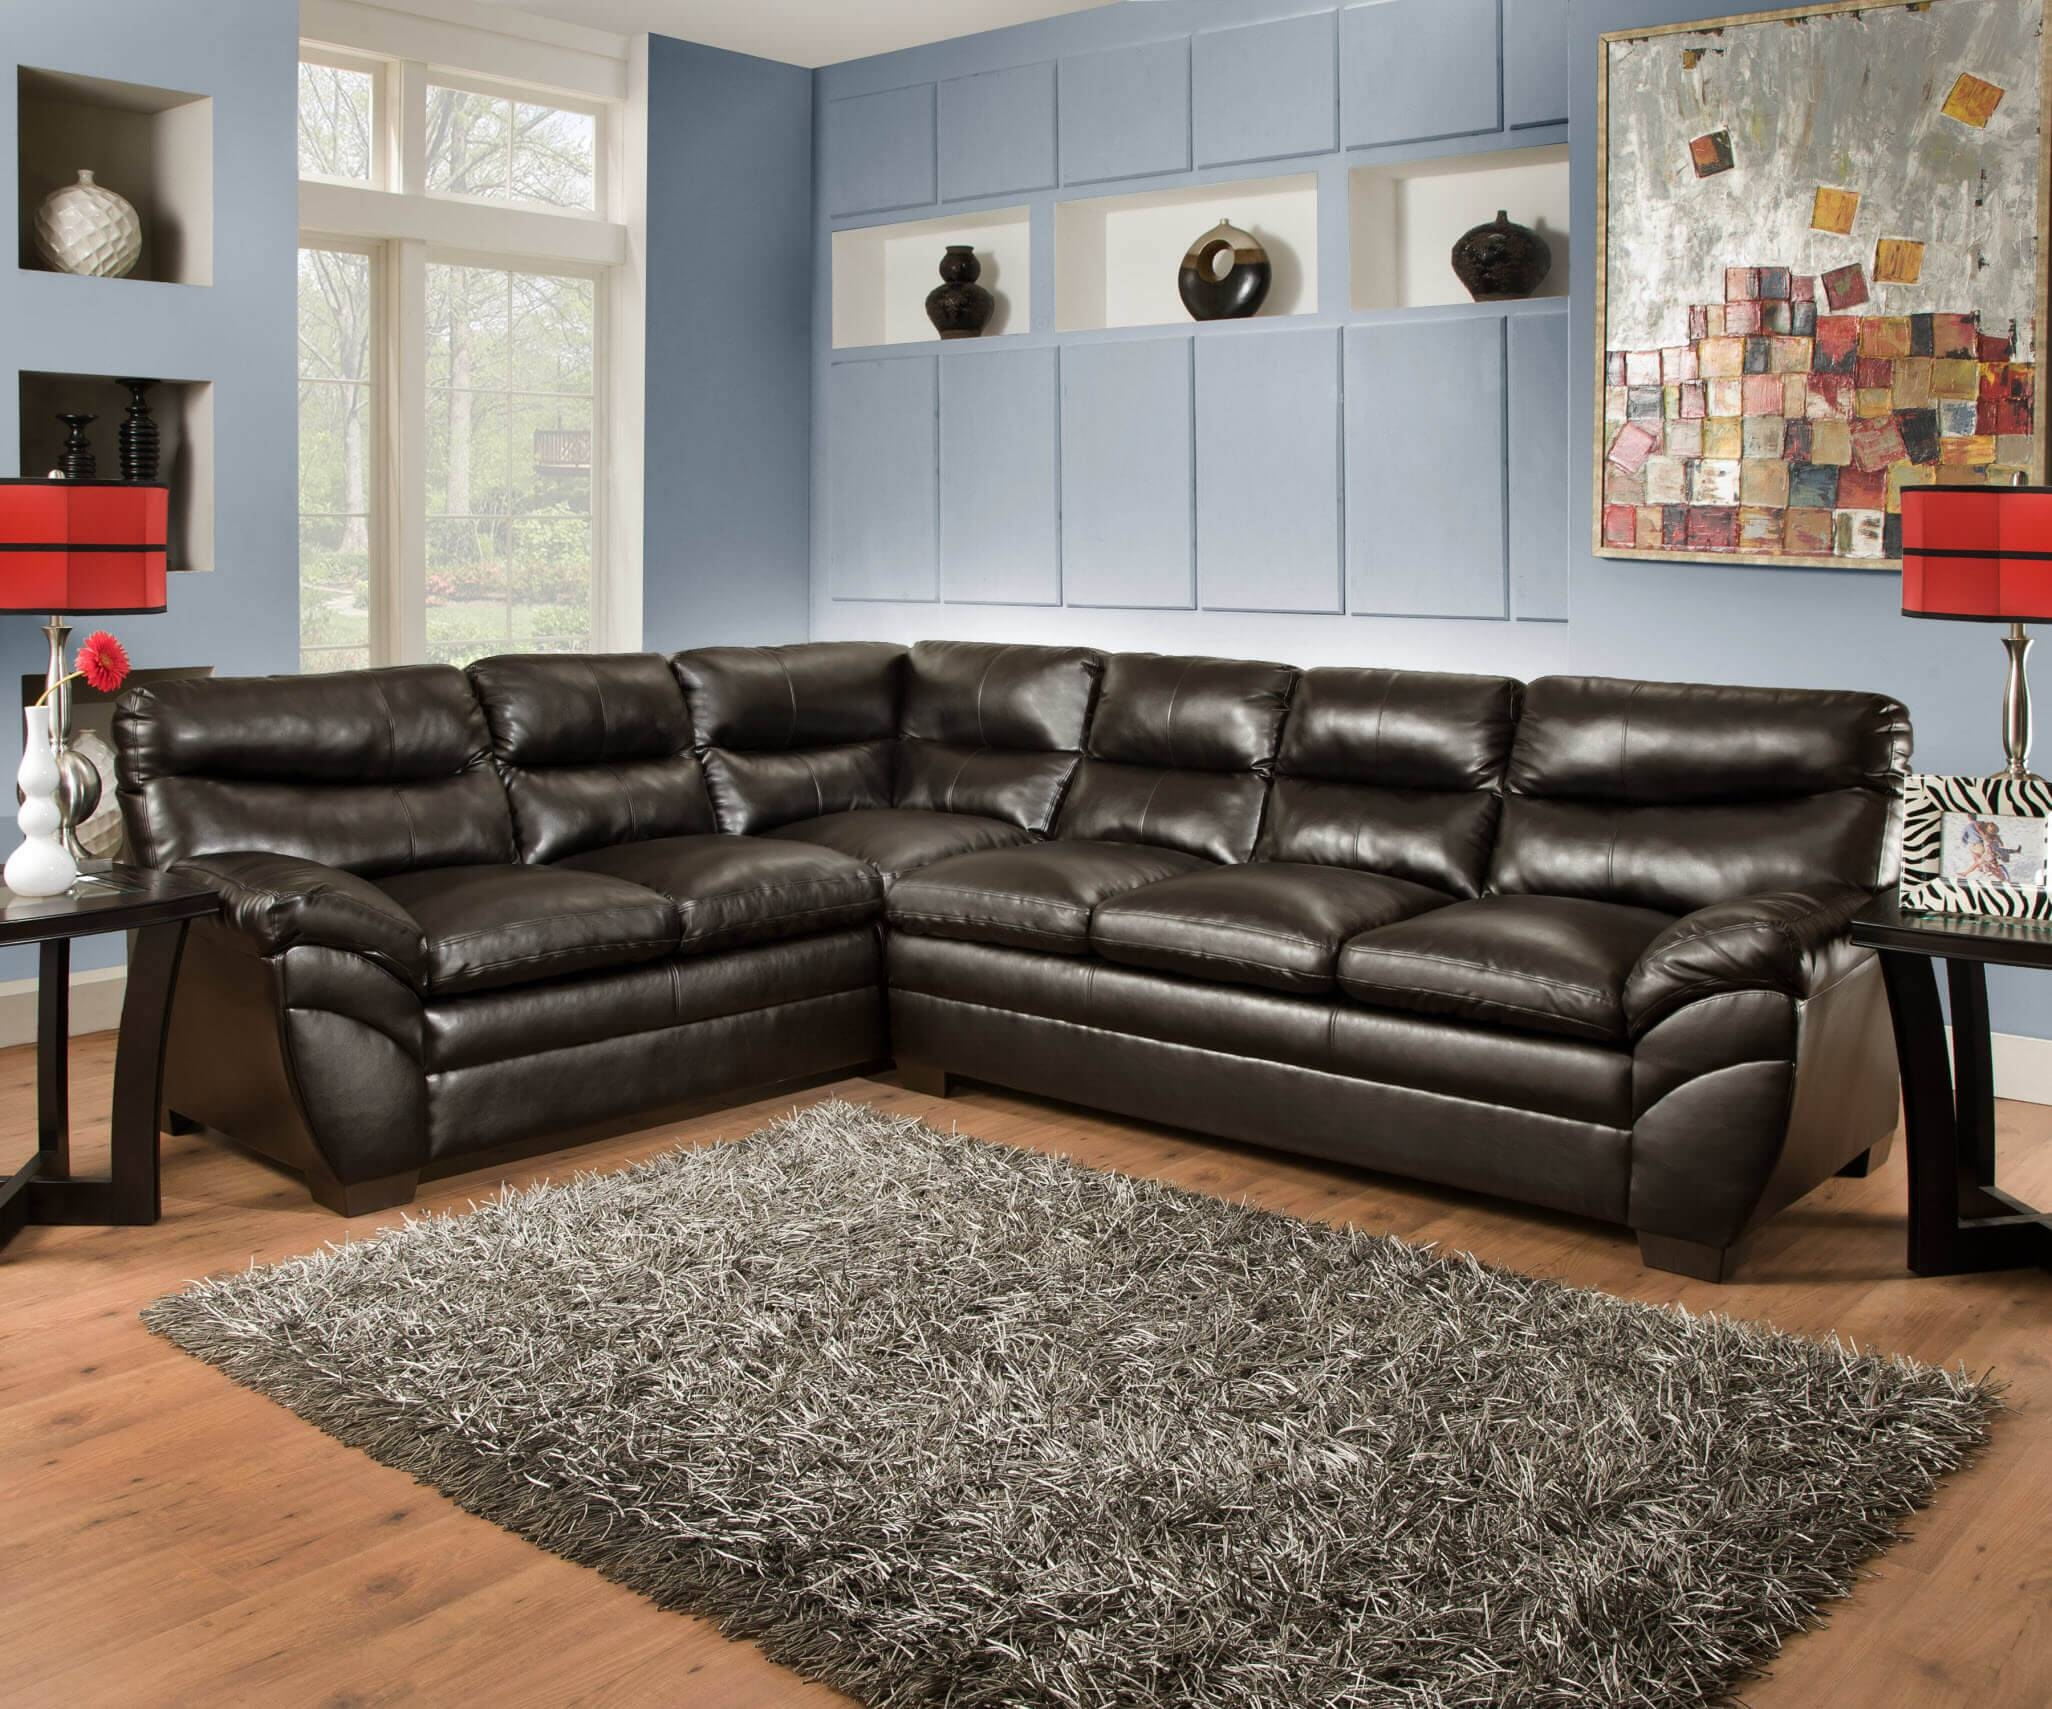 Simmon Soho Espresso Sectional | Sectional Sofa Sets in Simmons Sectional Sofas (Image 9 of 30)